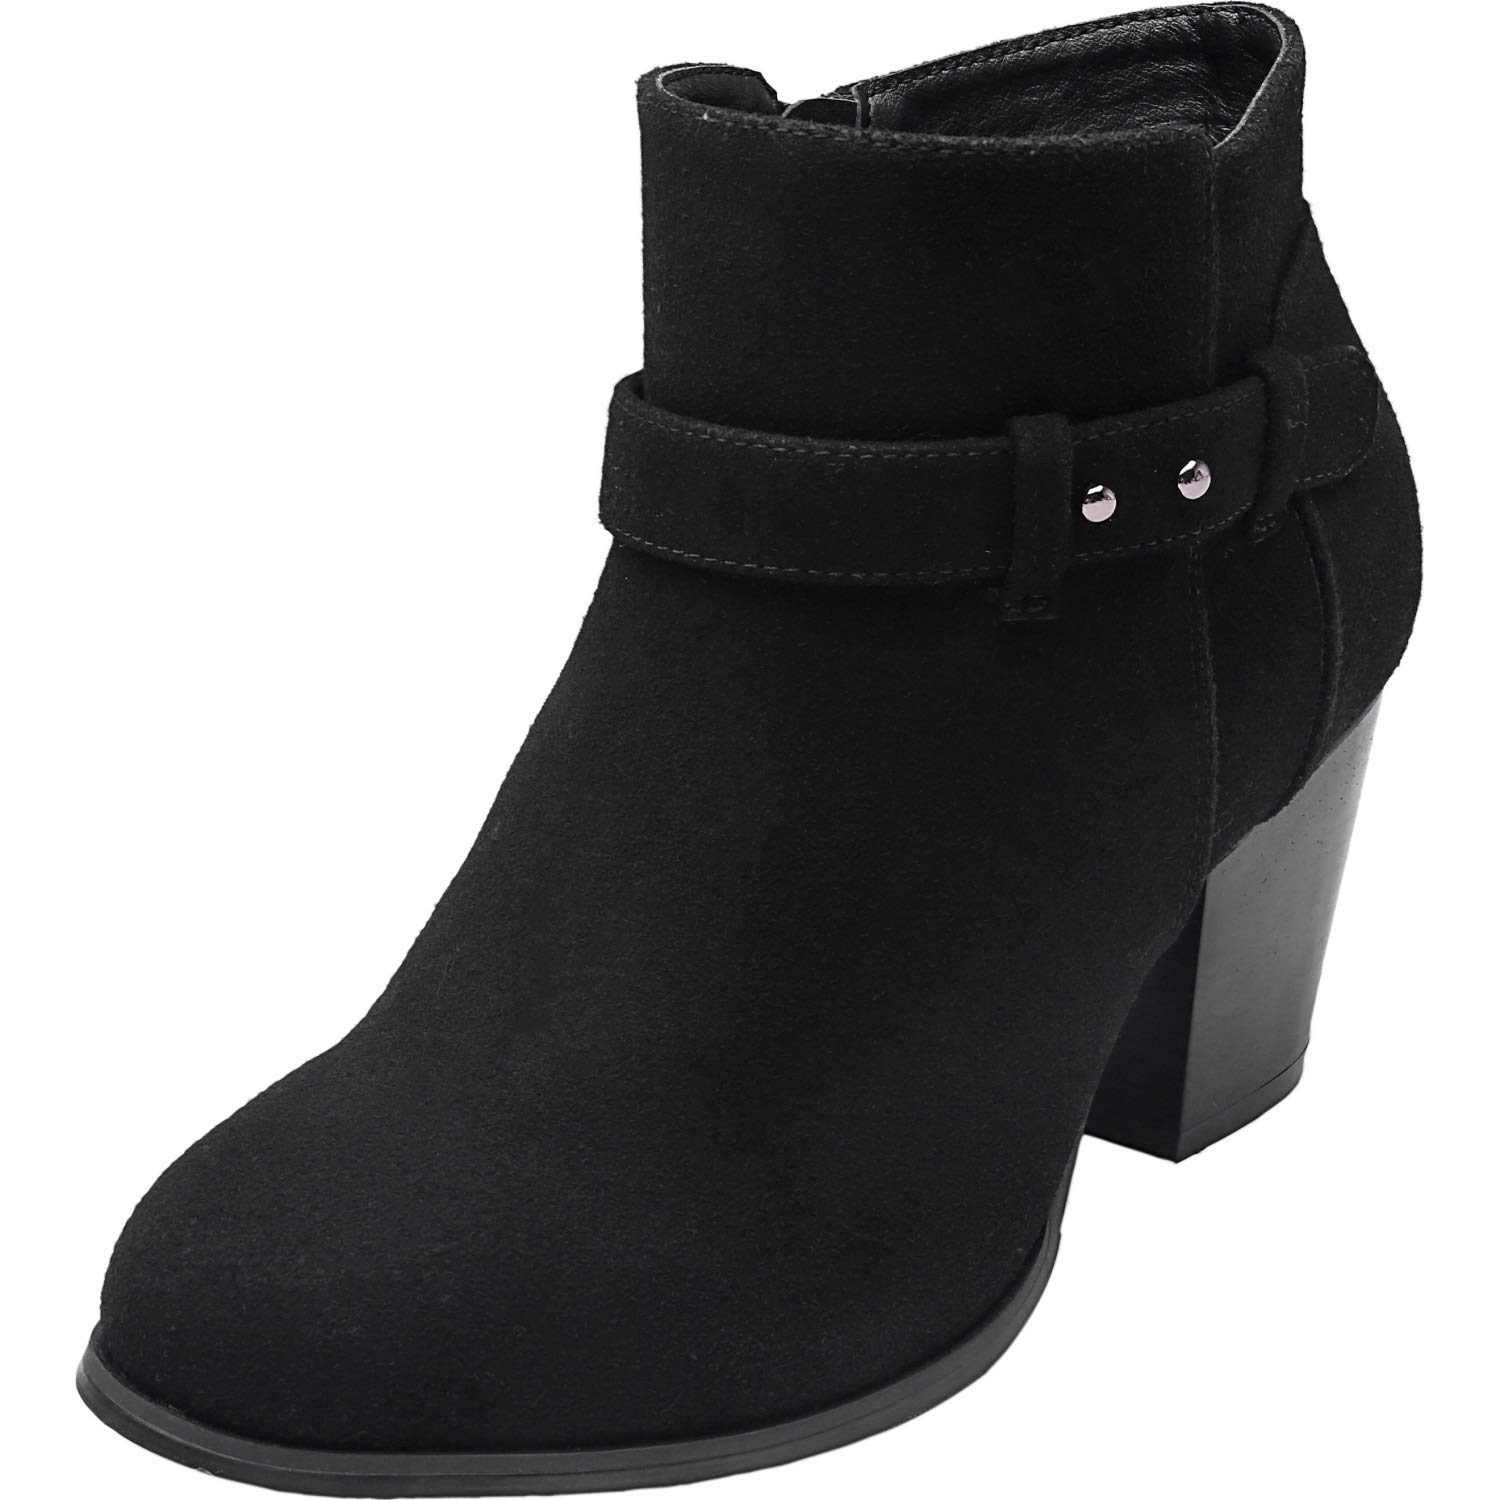 Plus Size Wide Width Ankle Boots for Women Mid Chunky Block Stacked Heels  Round Toe Slip on Side Zip